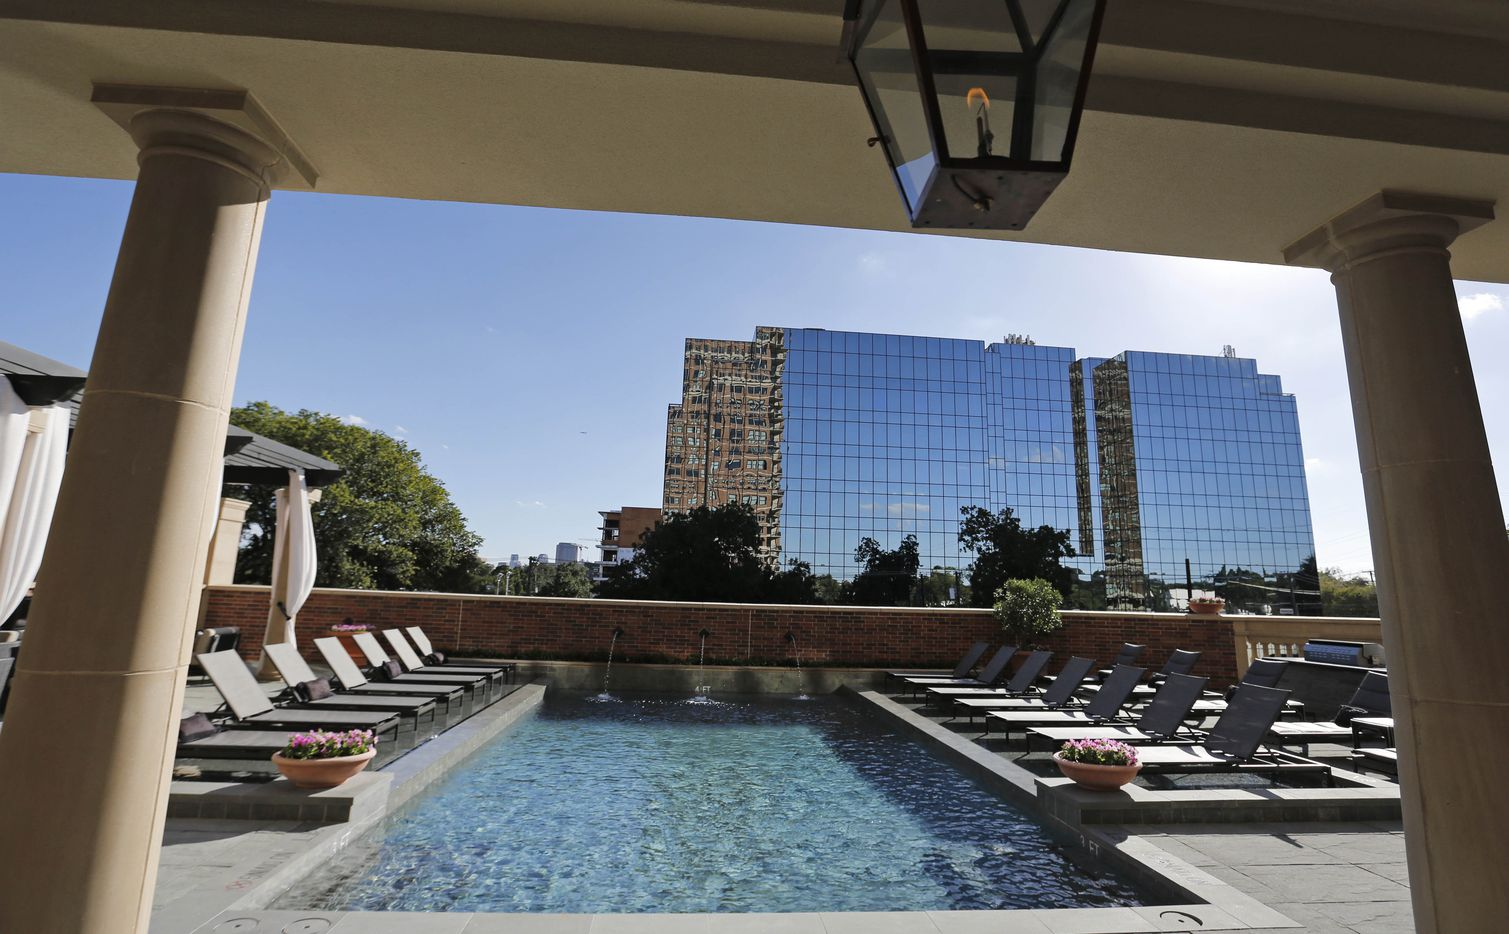 The pool on the third floor at the McKenzie, a new luxury   residential tower on the edge of Highland Park.